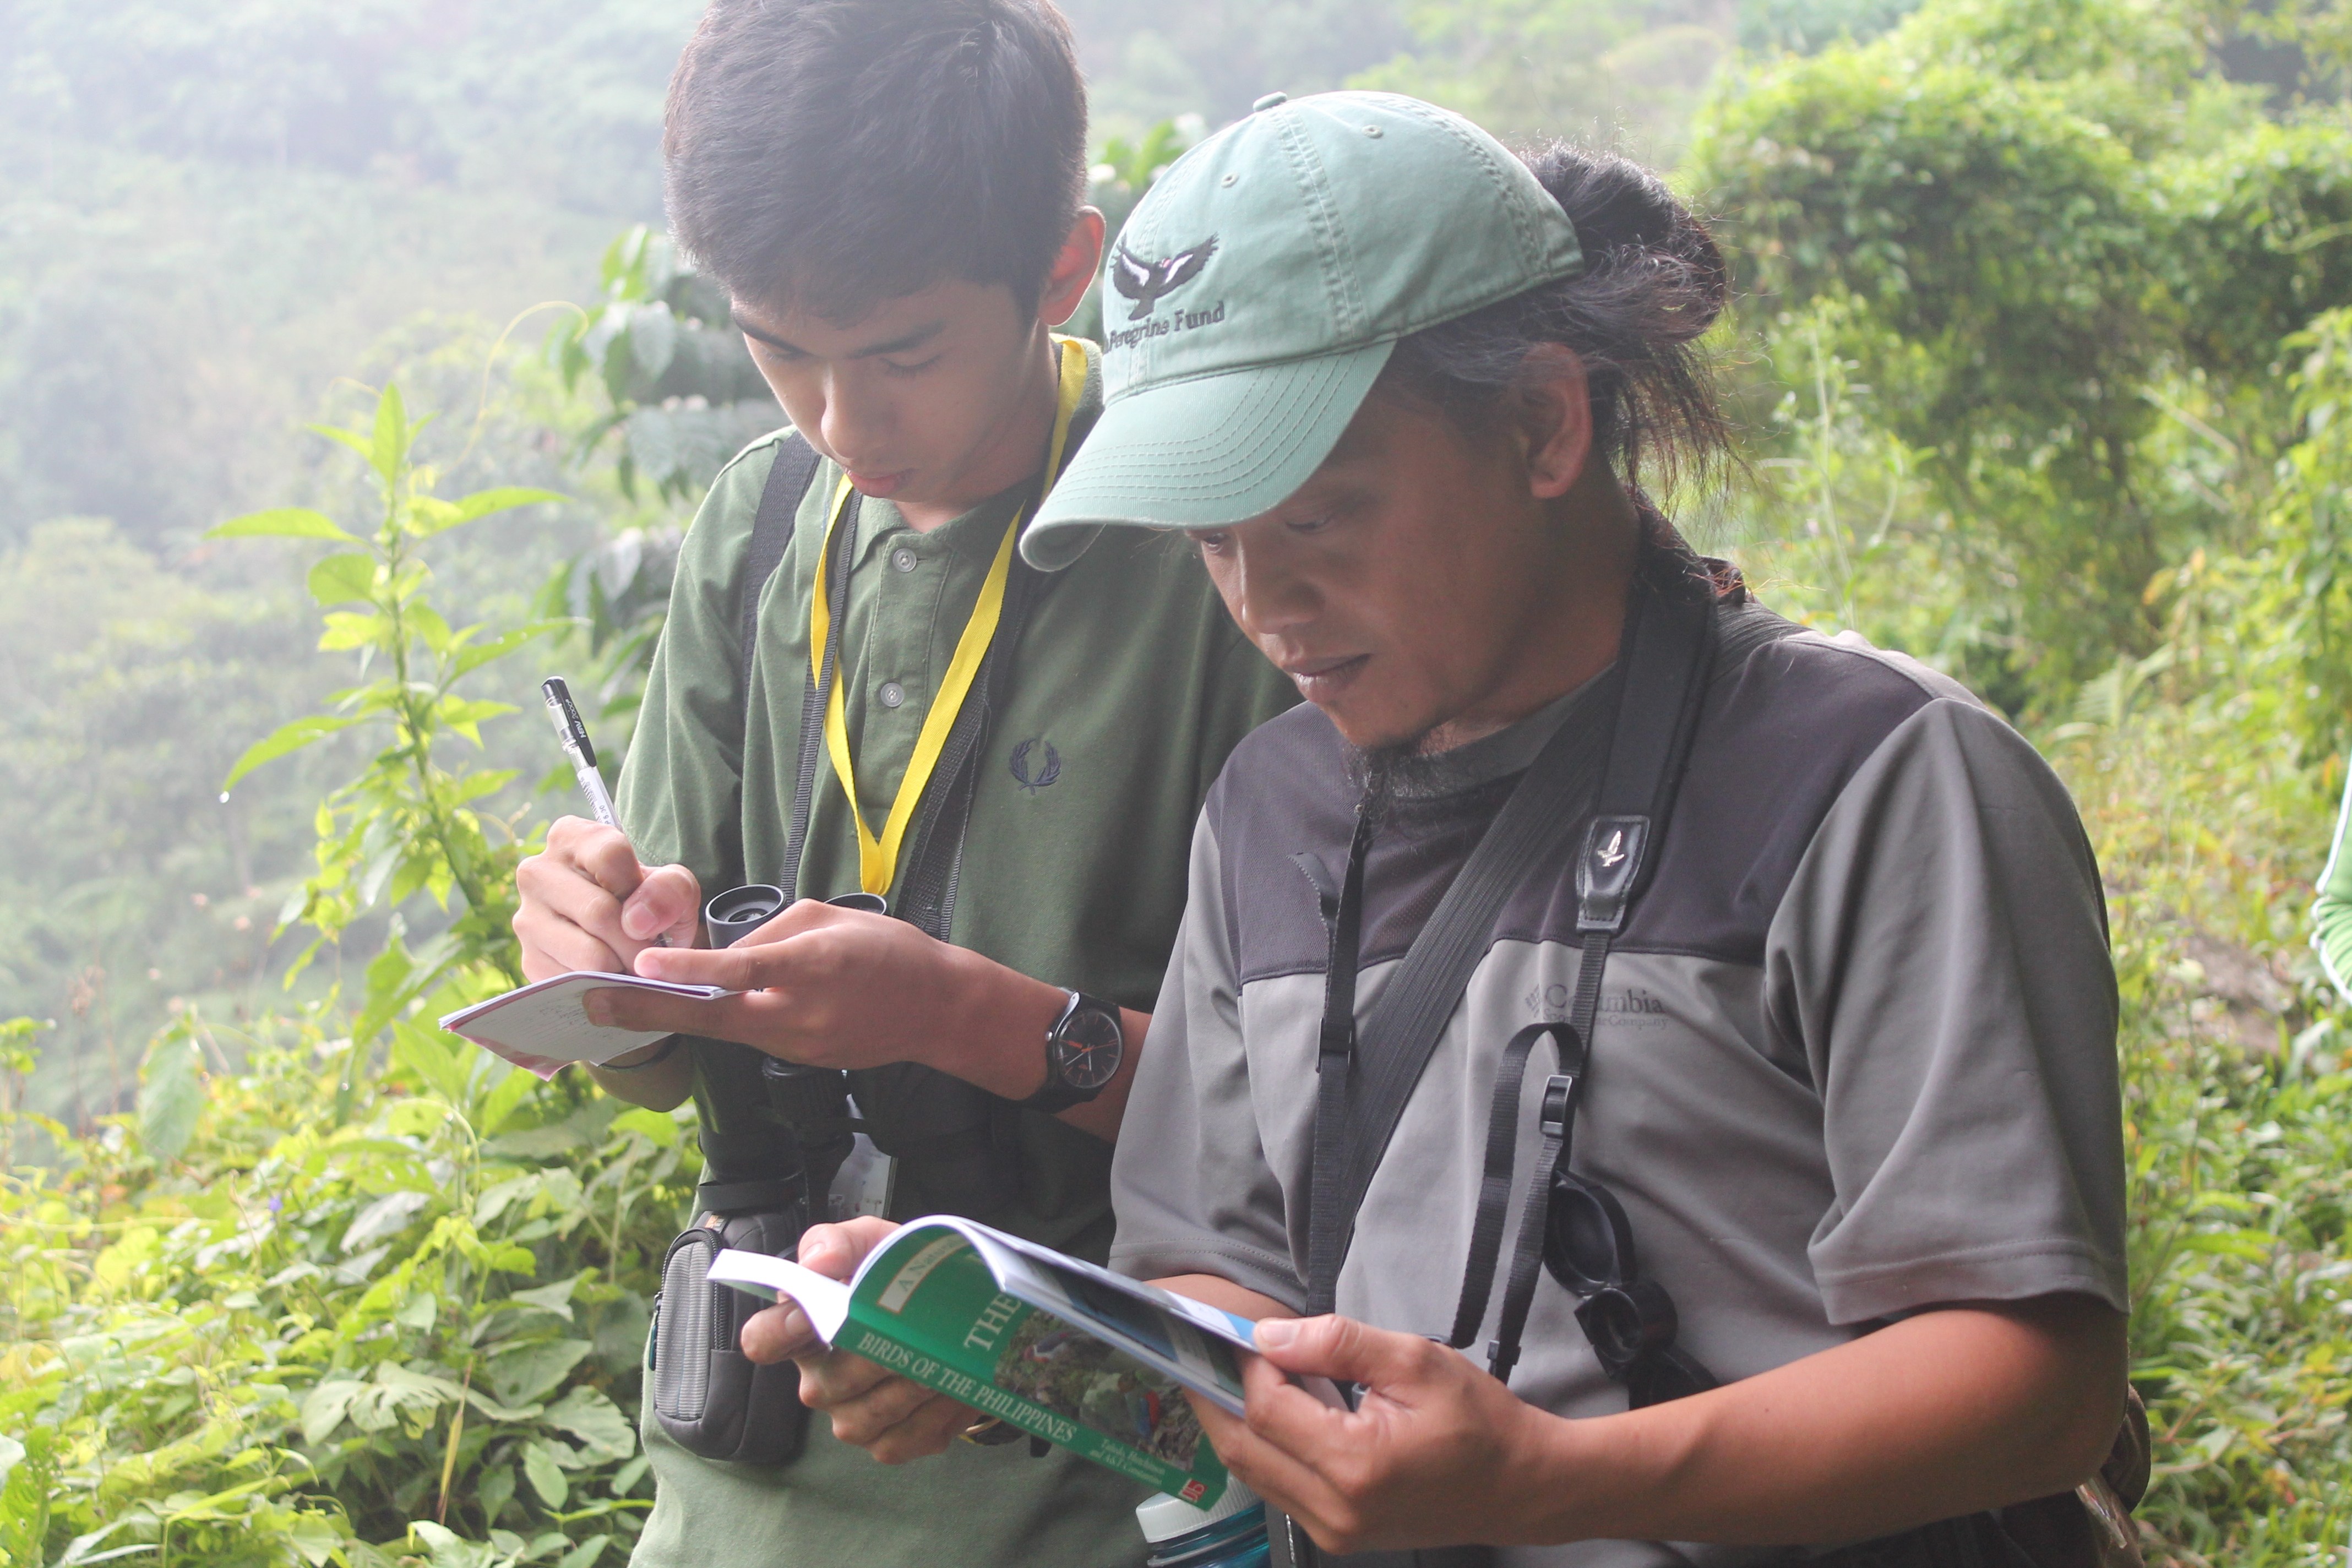 Practicing good habits: taking down notes and checking the guide book. Photo by Trinket Constantino.